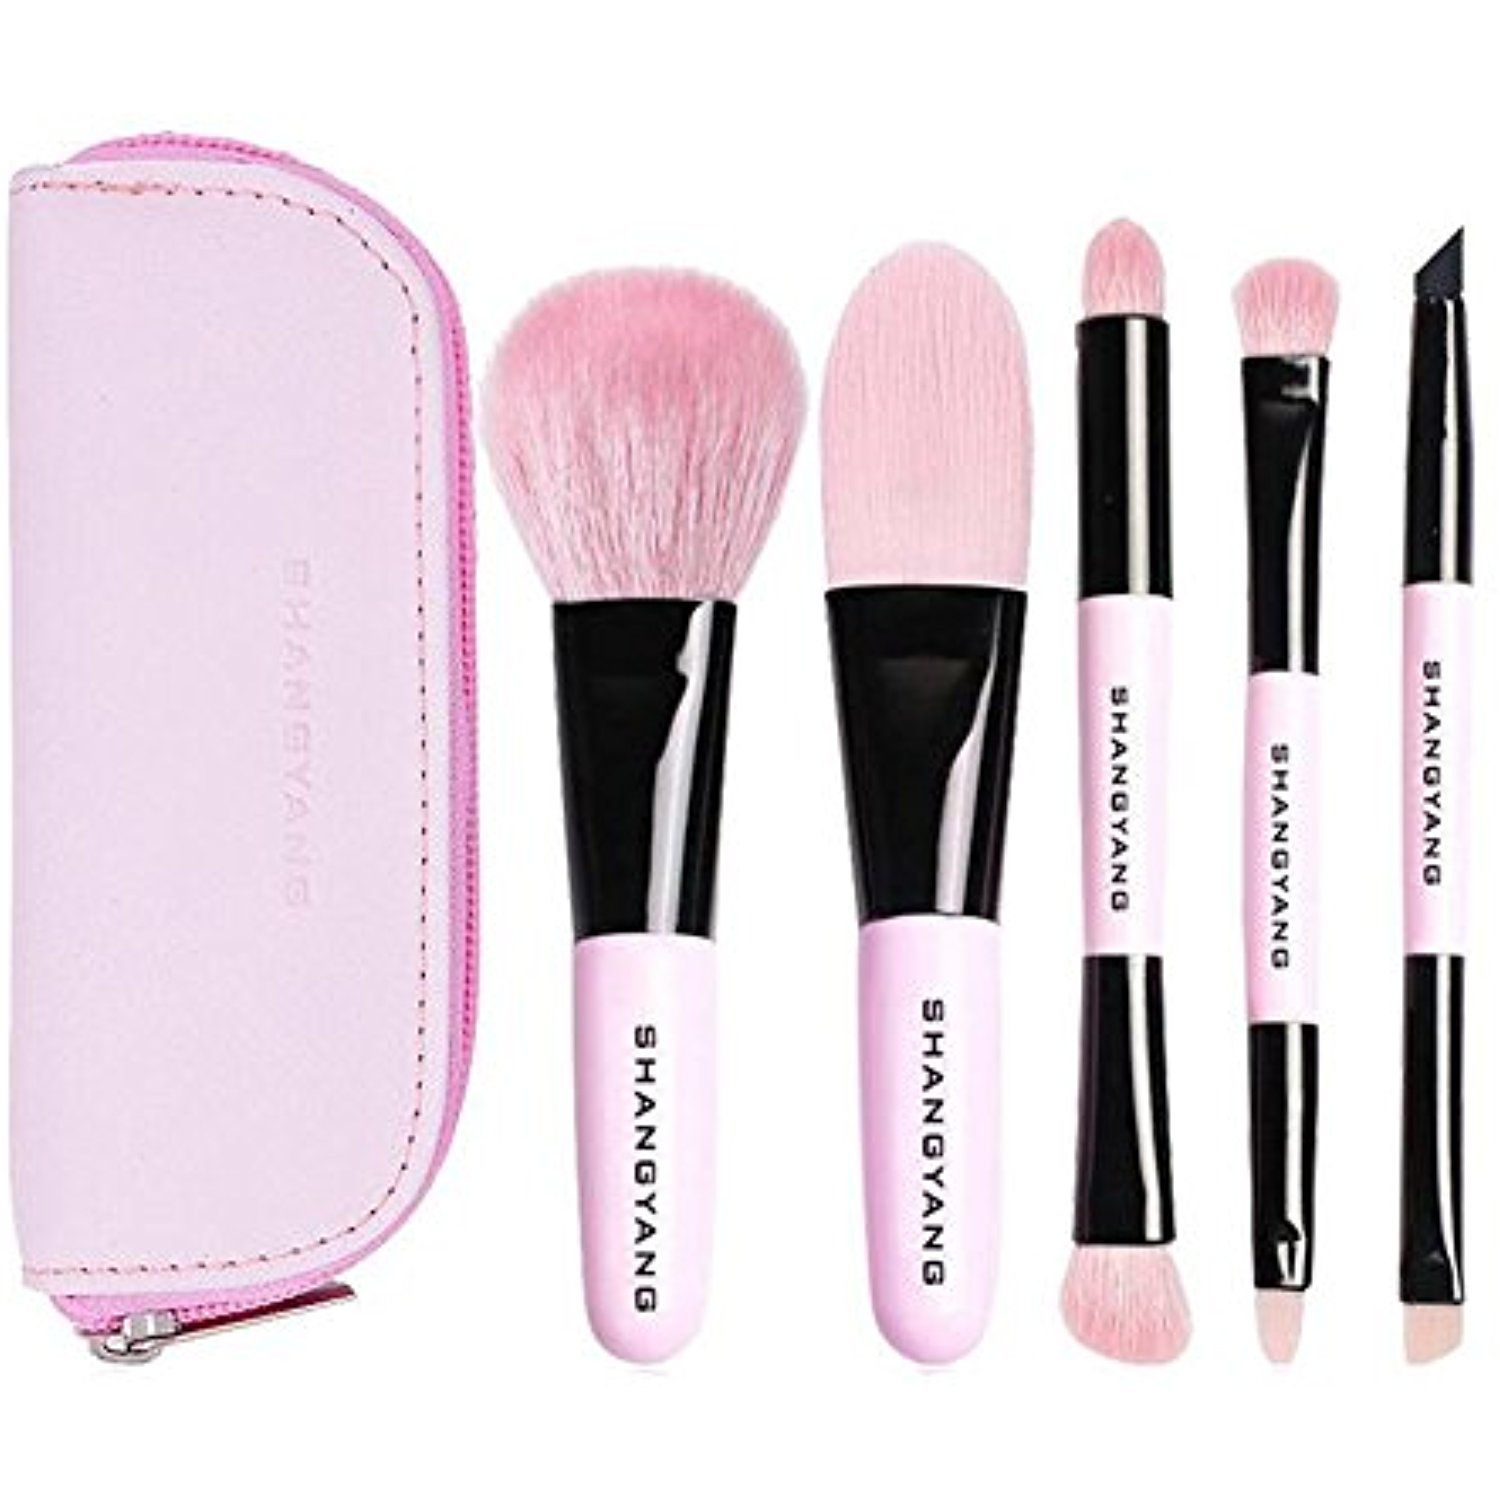 Portable Makeup Brushes 5 Pieces Make Up Set Foundation